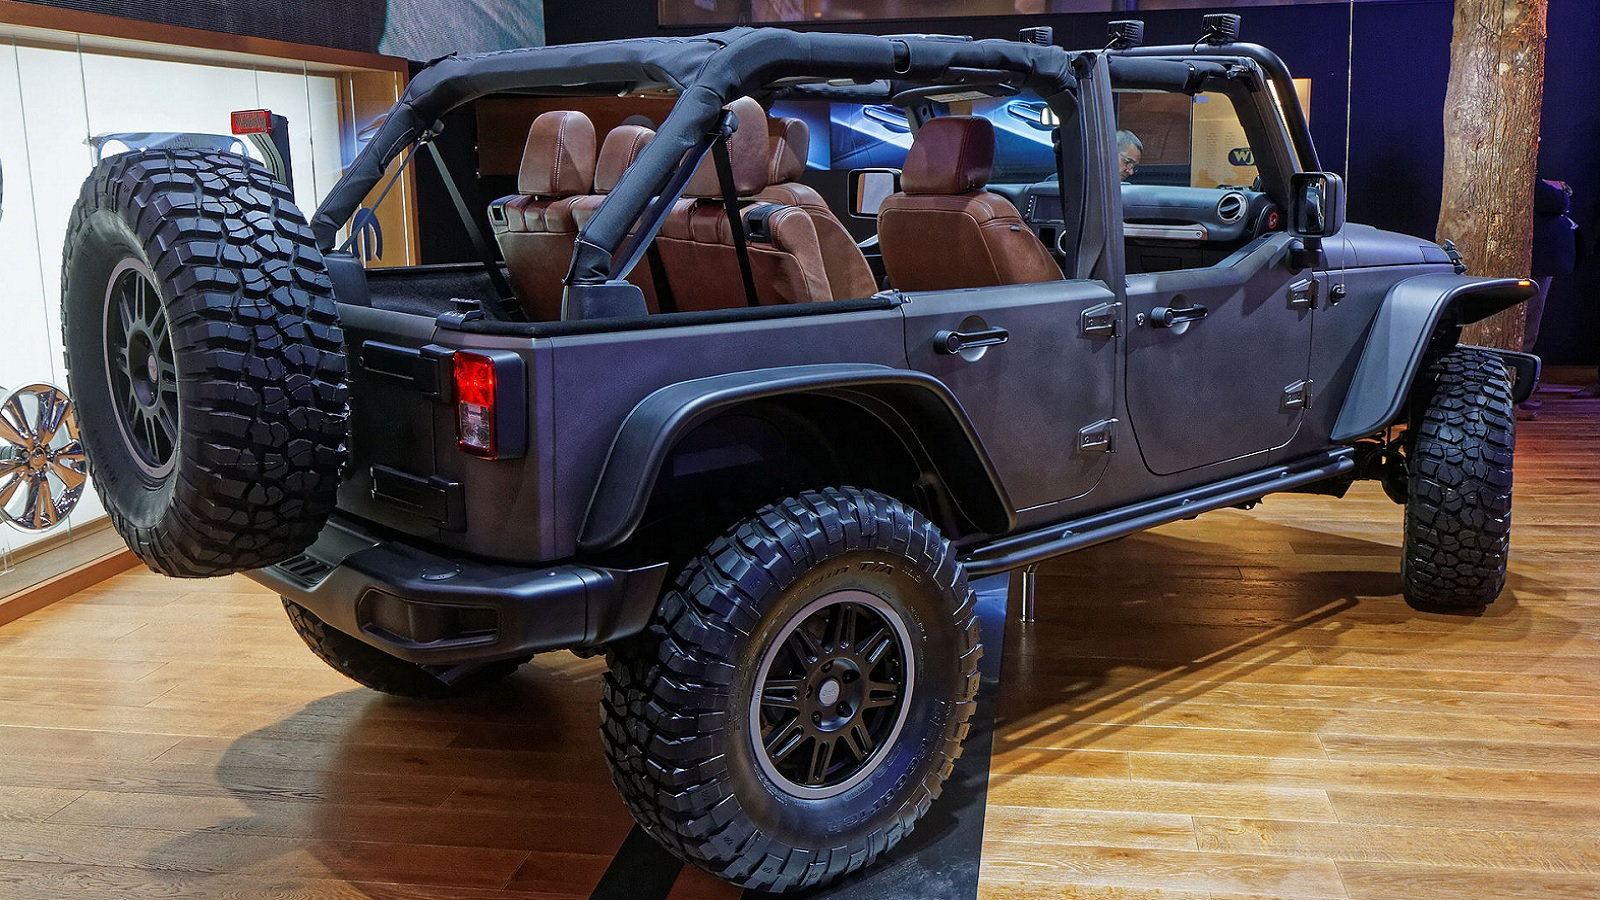 Would You Try Sharing a Jeep with Strangers?